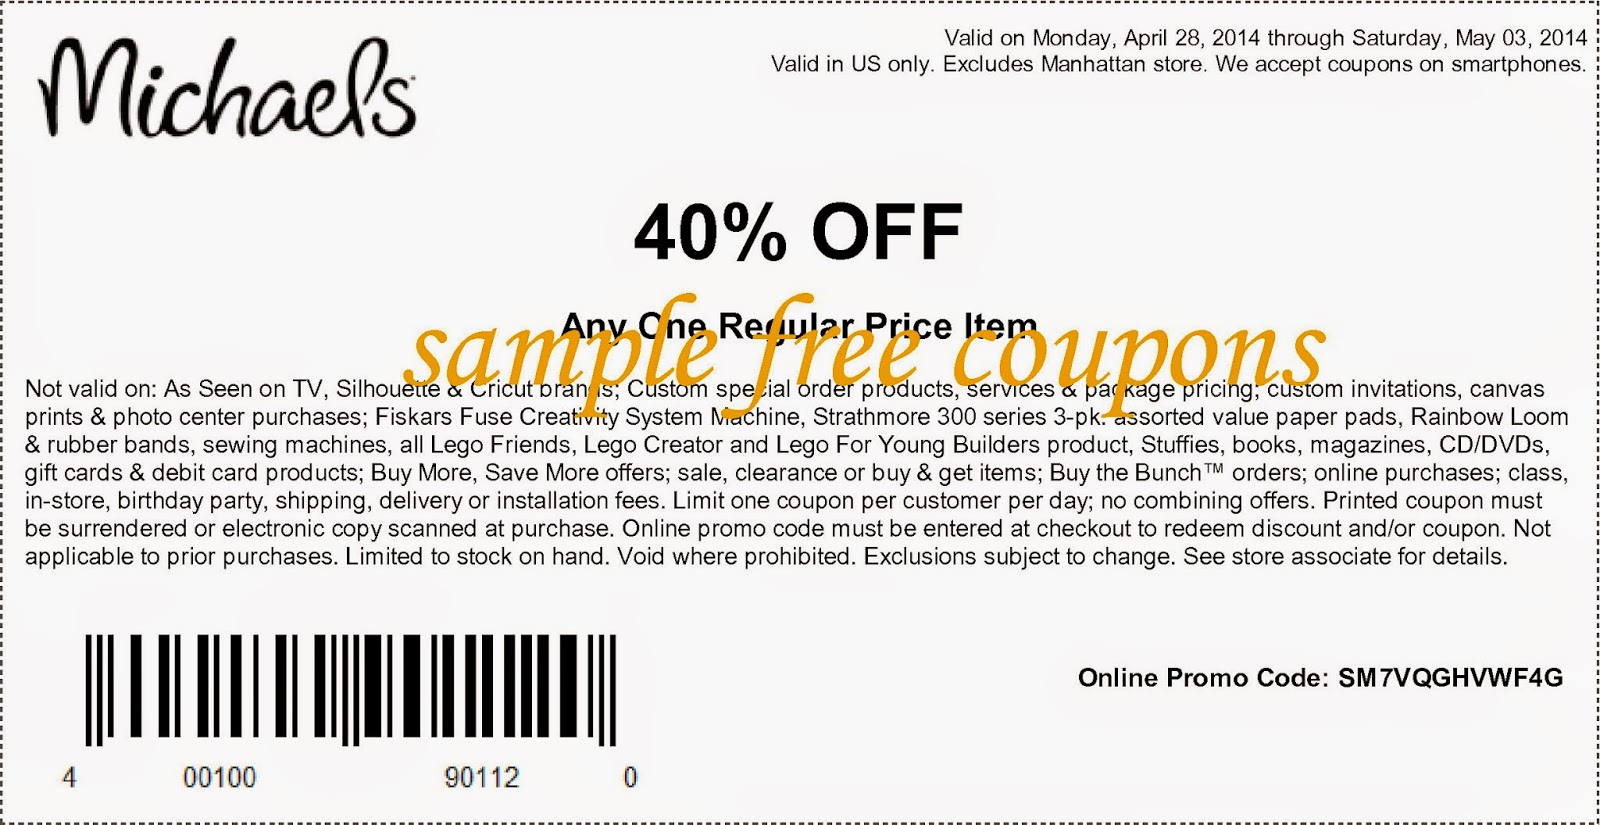 Michaels Printable Coupons 2014